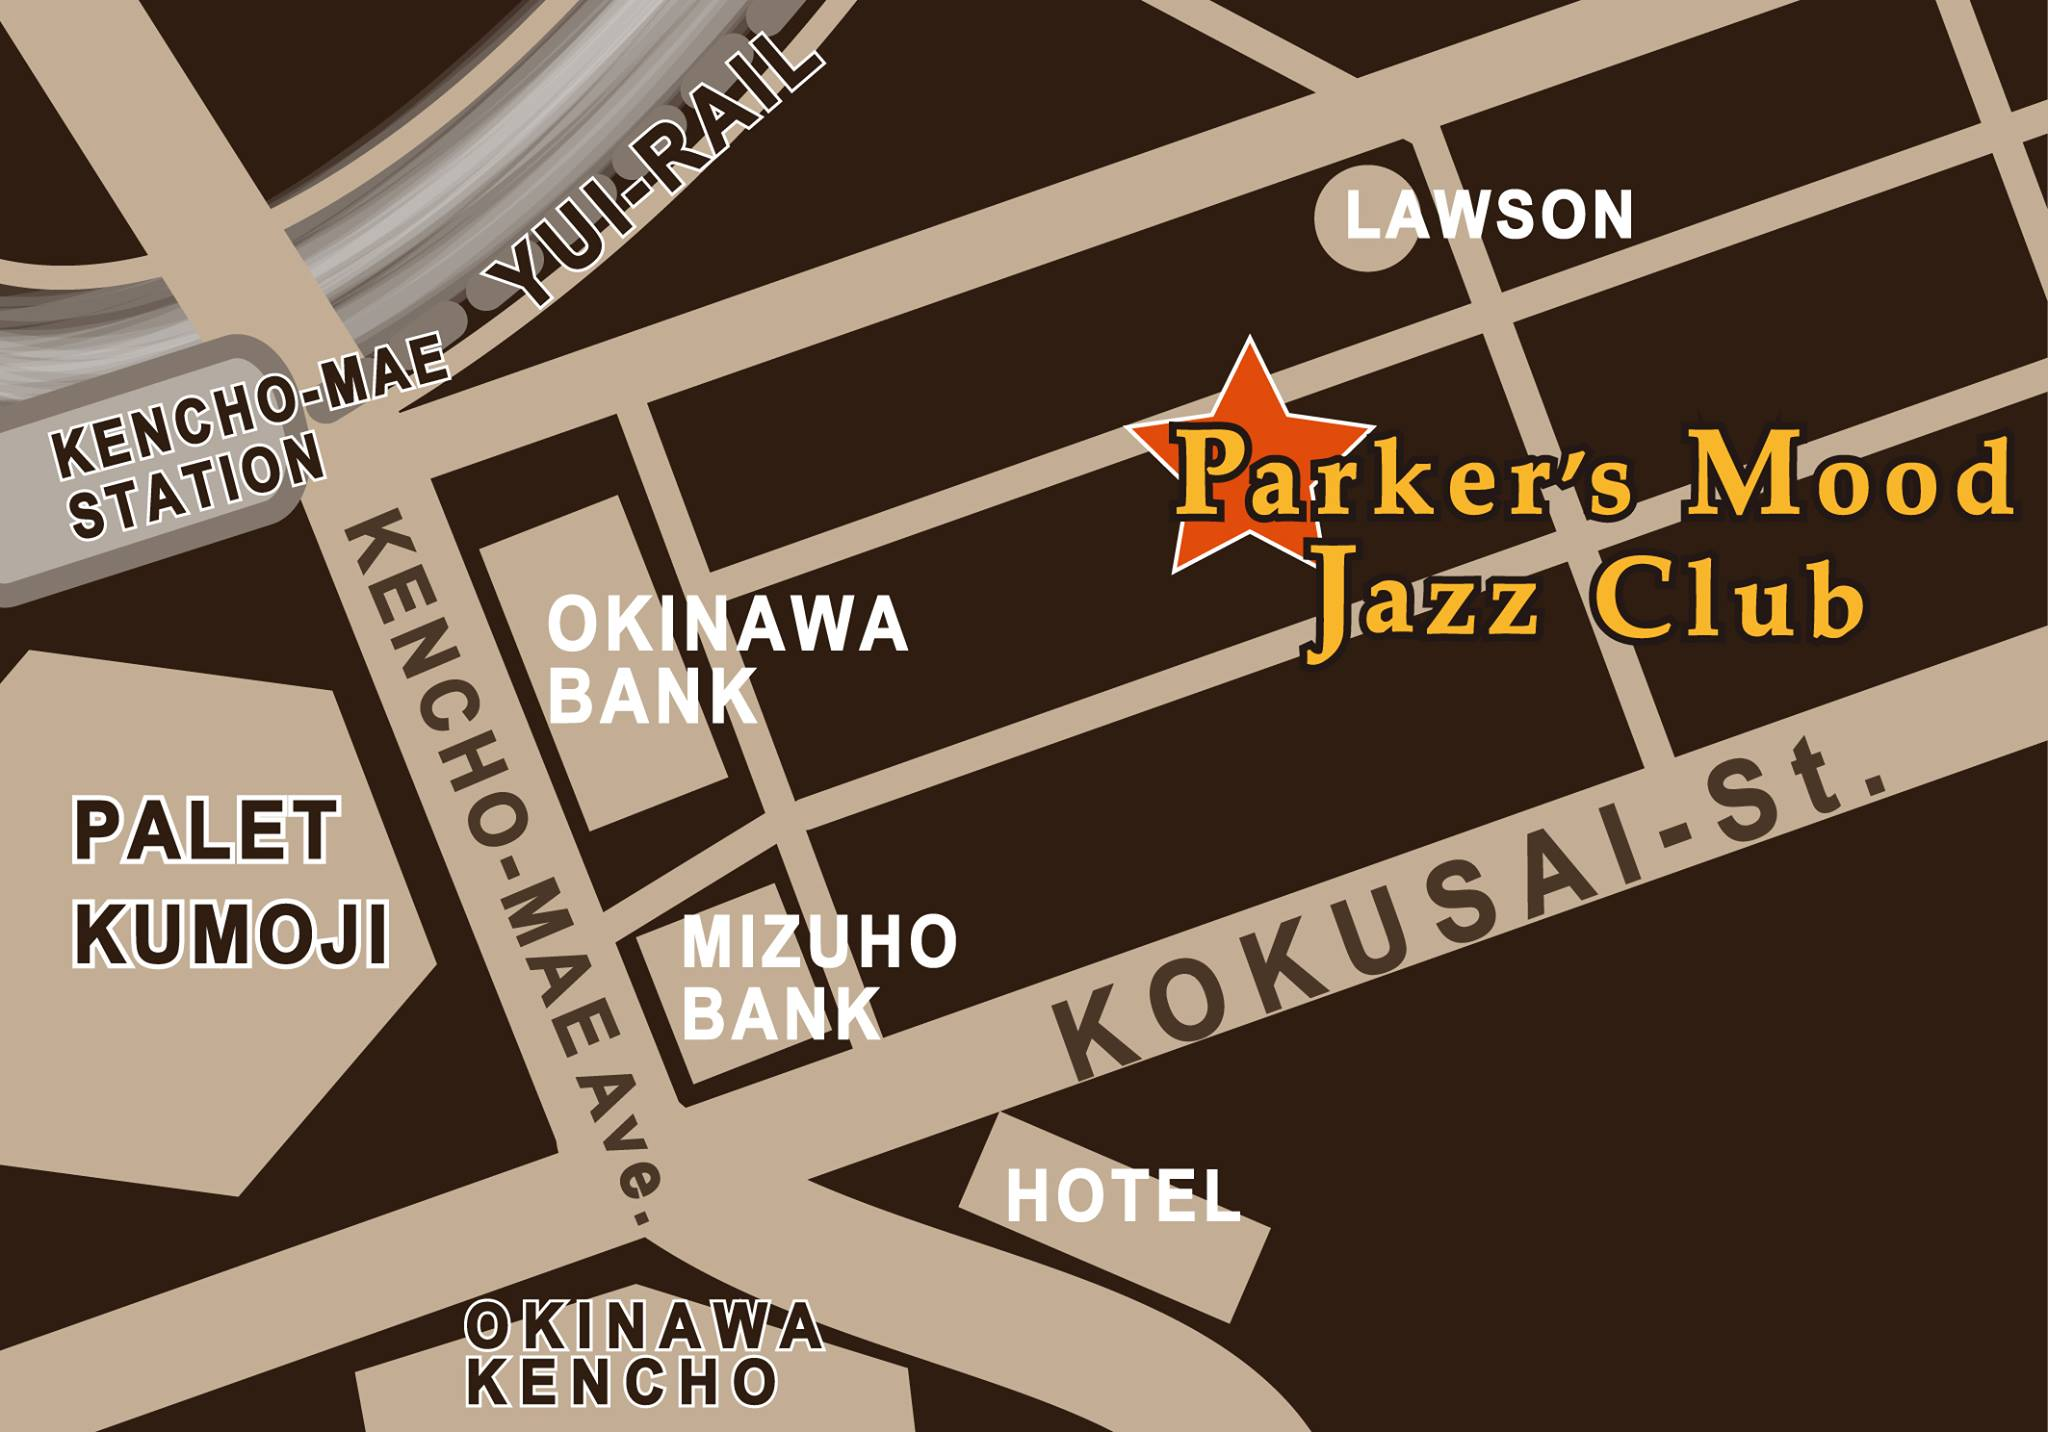 Parker's Mood Jazz Club Naha,Okinawa.